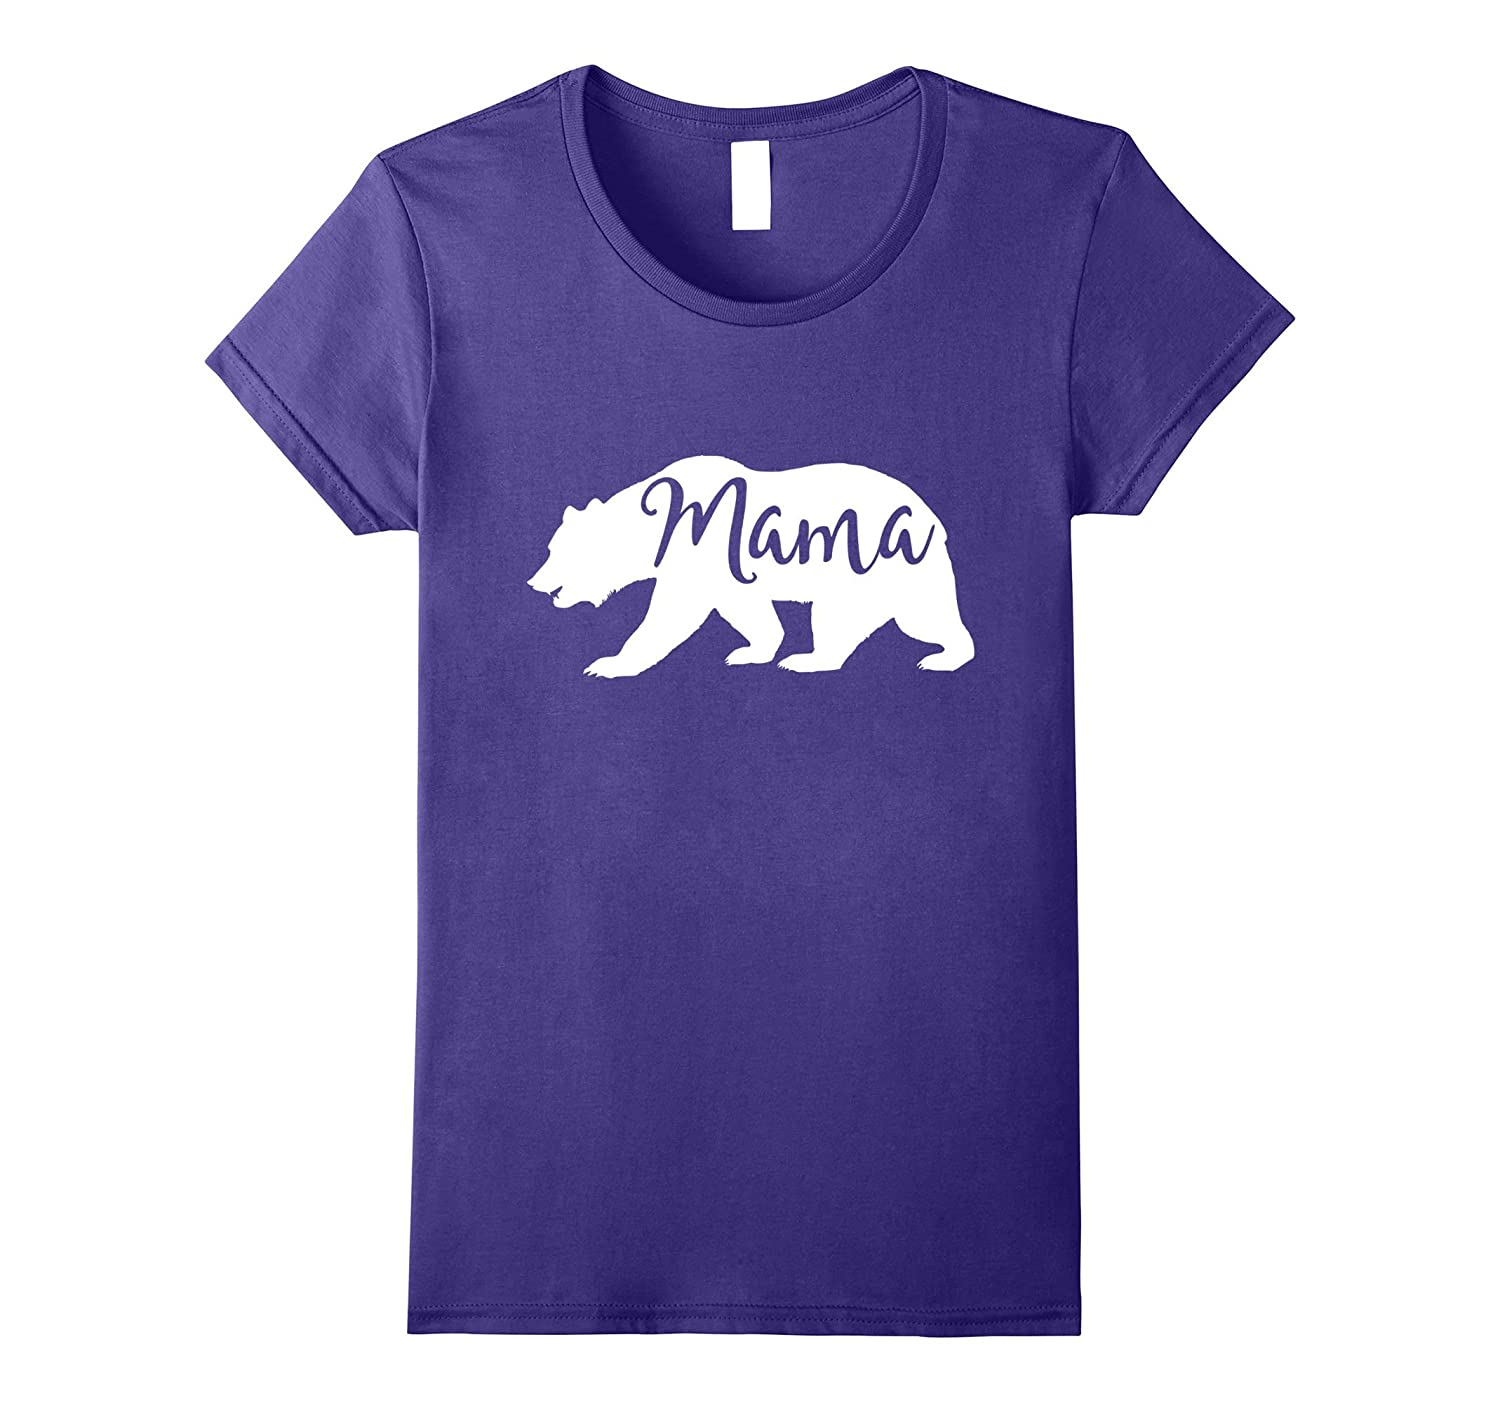 Womens Women's Mama Bear T-Shirt – Mom Shirt